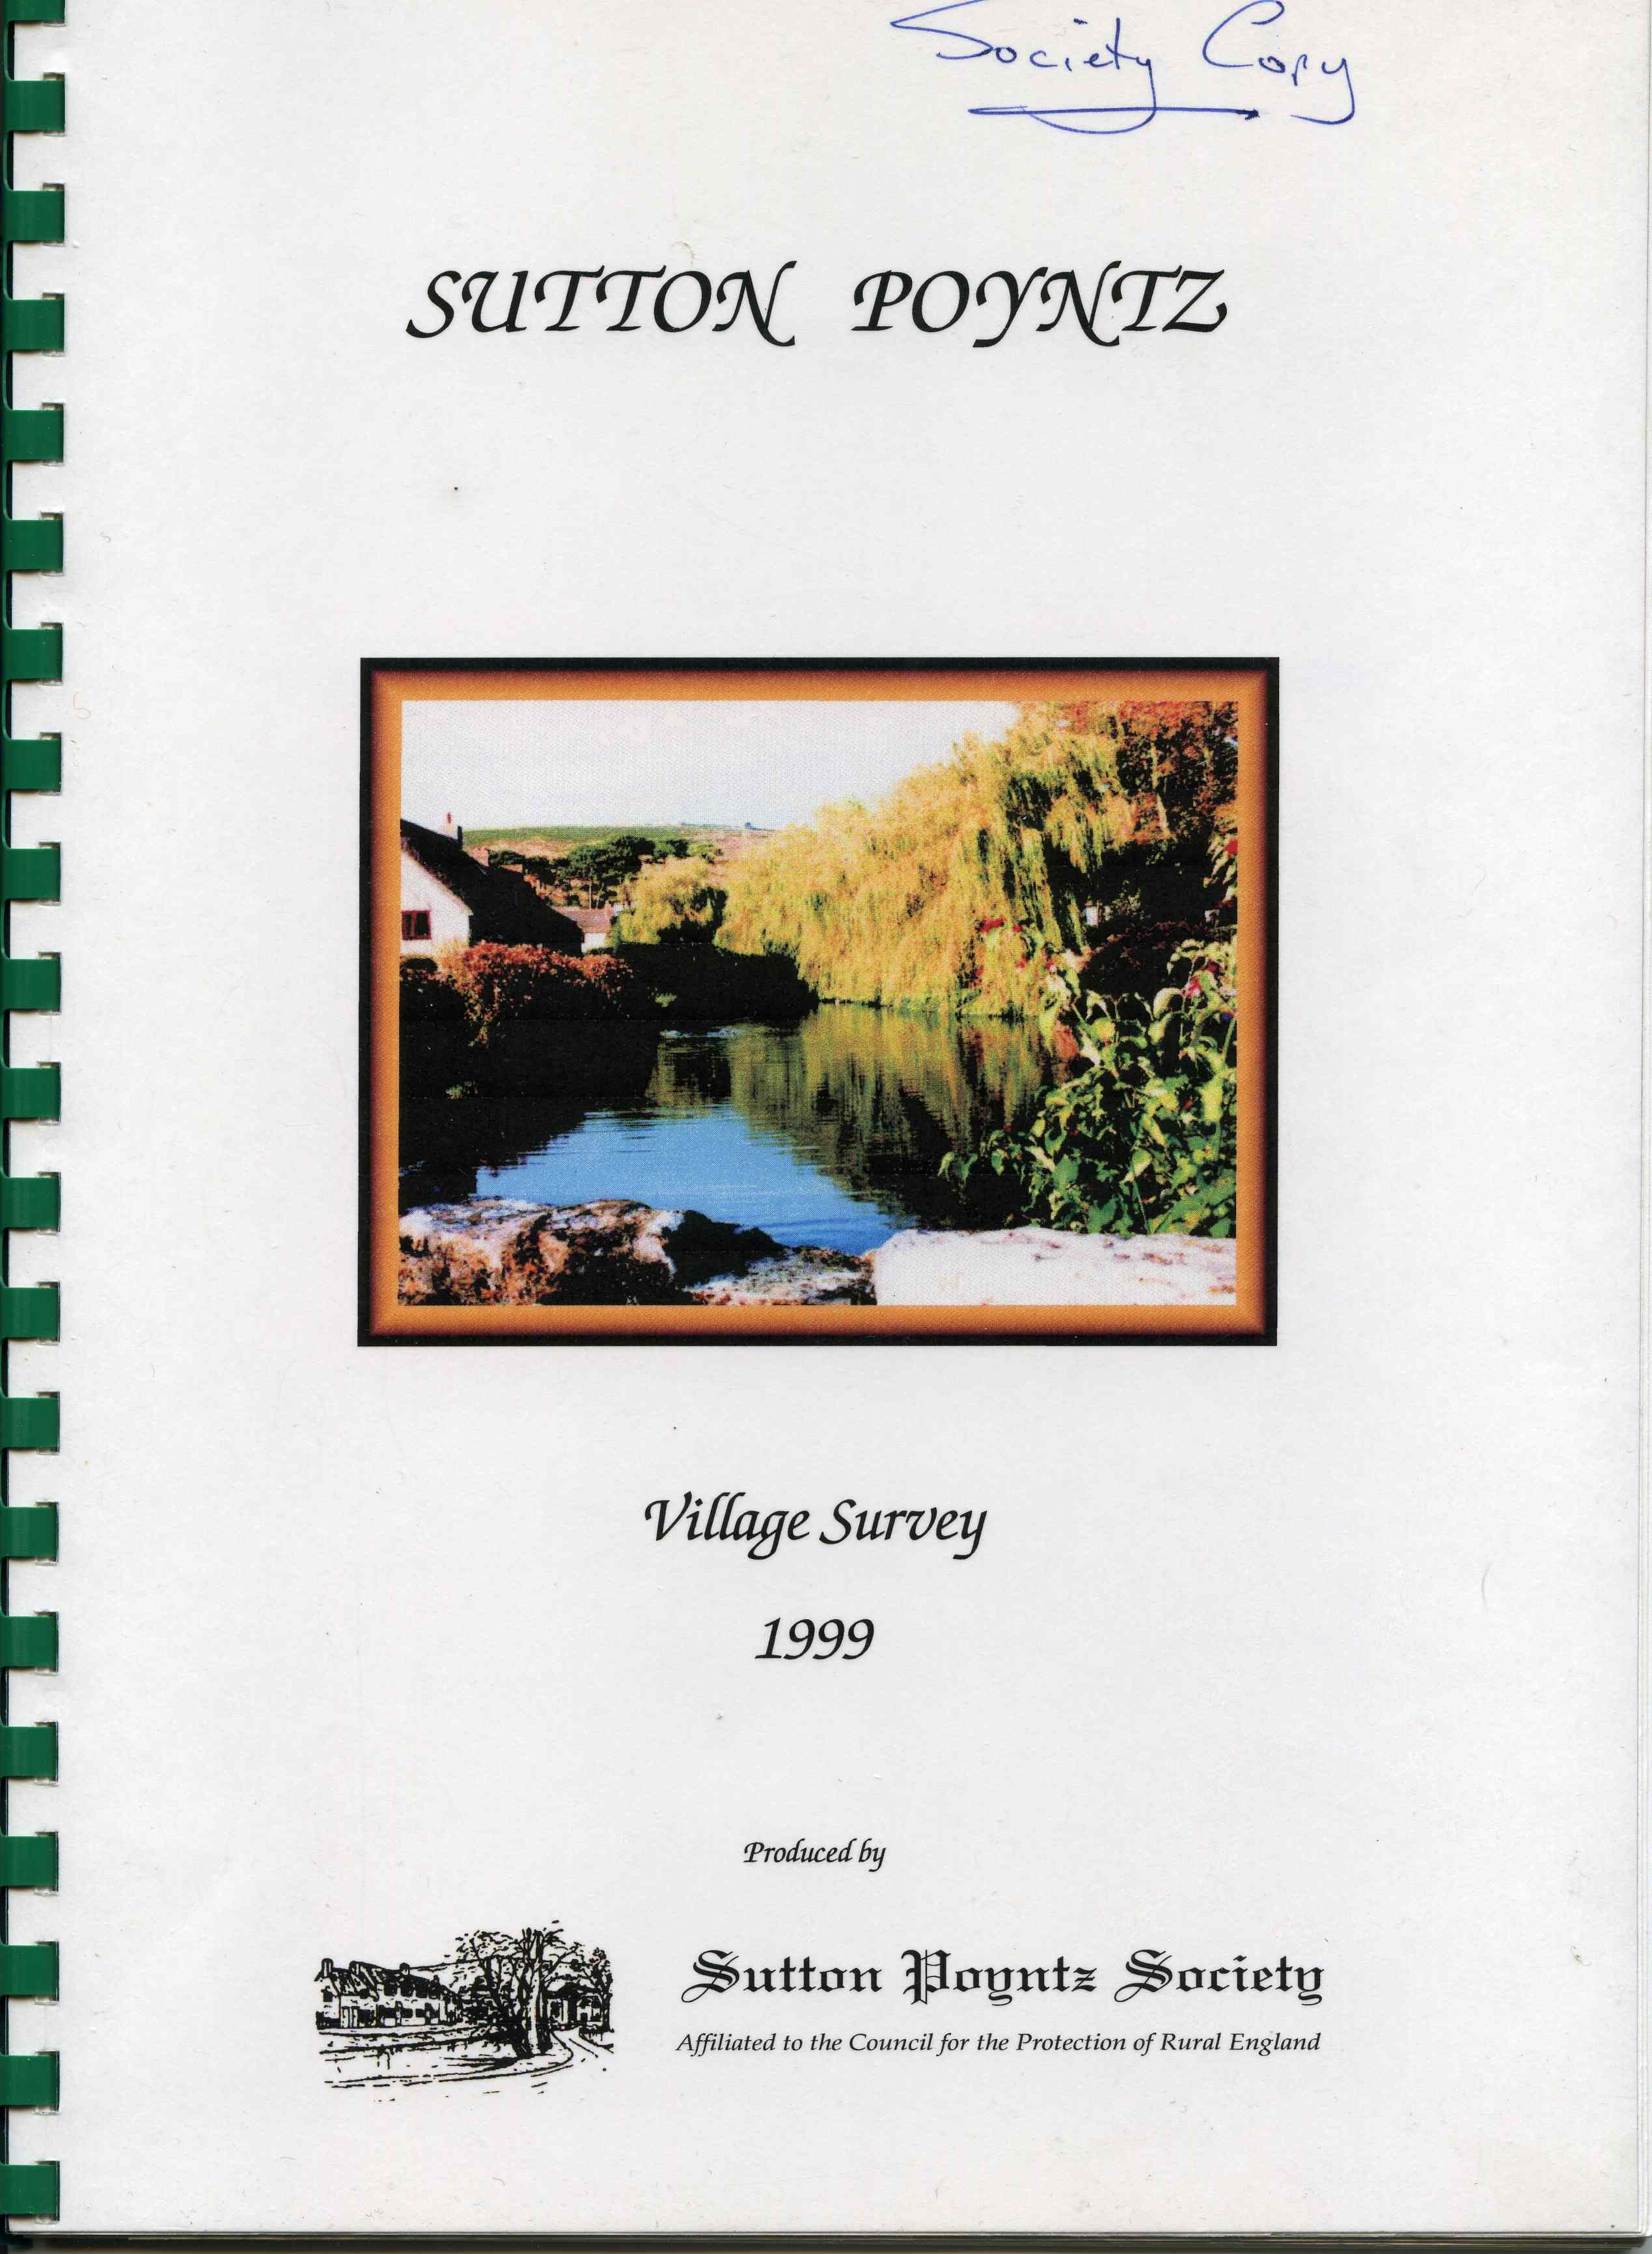 The Sutton Poyntz Village Survey - 1999